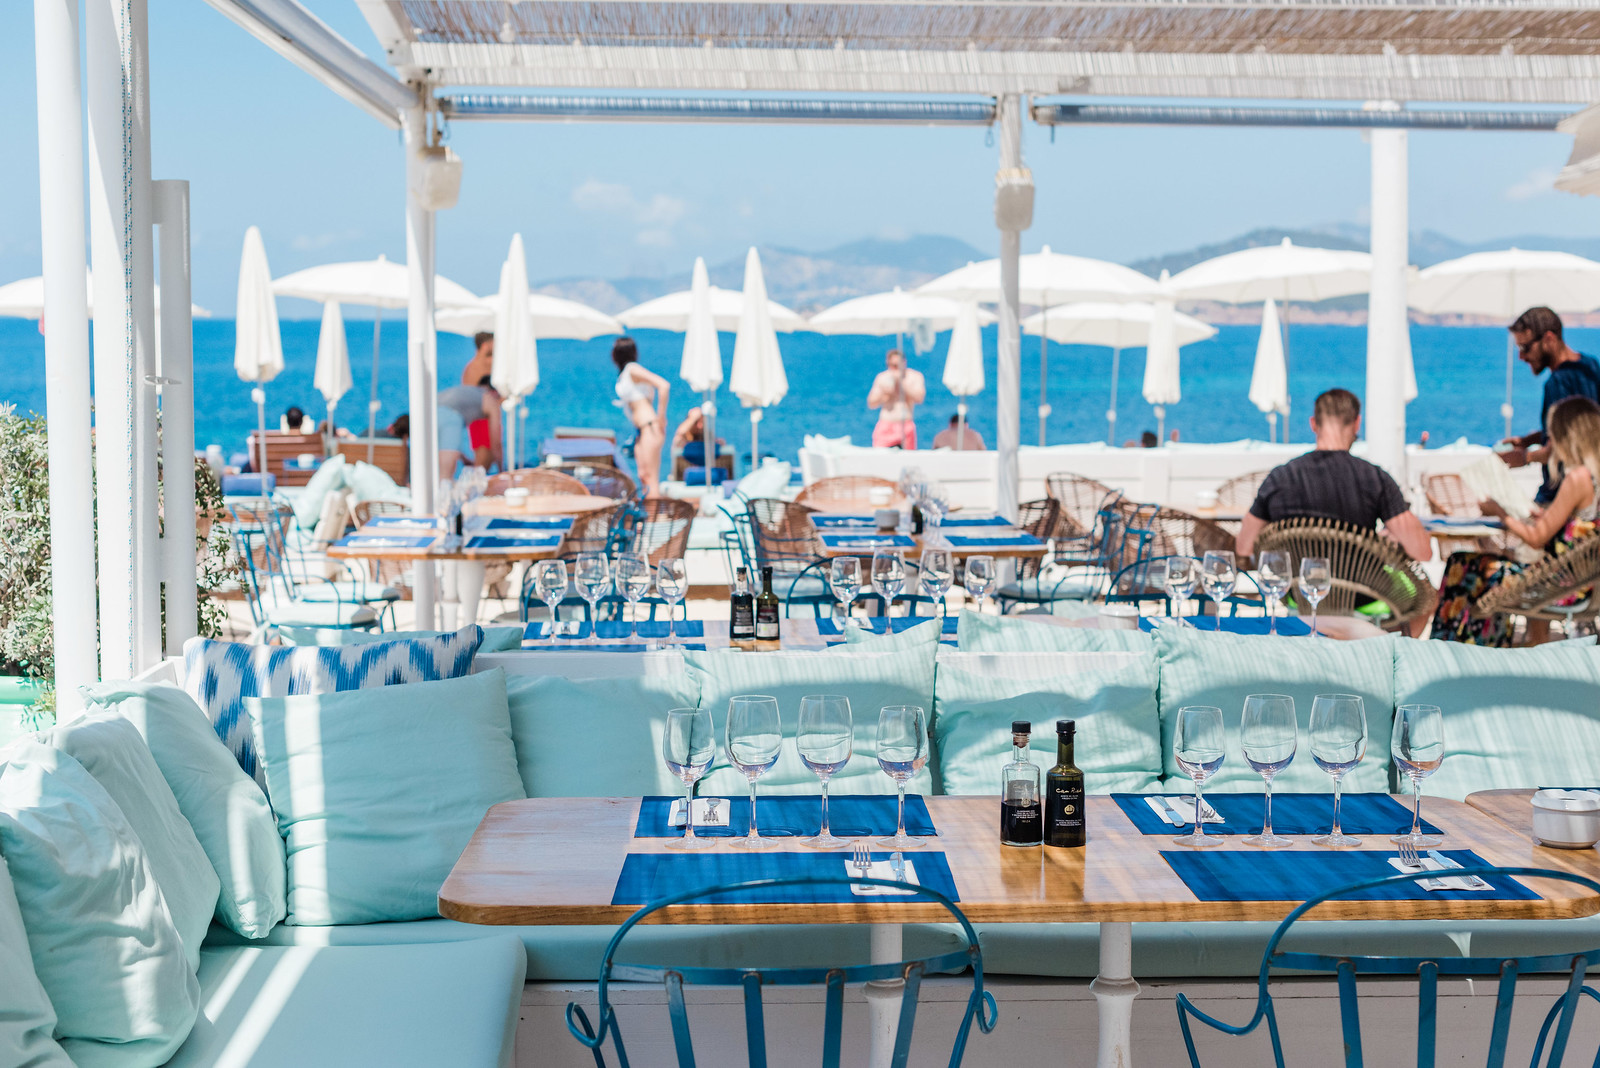 https://www.white-ibiza.com/wp-content/uploads/2020/03/ibiza-restaurants-experimental-beach-ibiza-2019-01.jpg